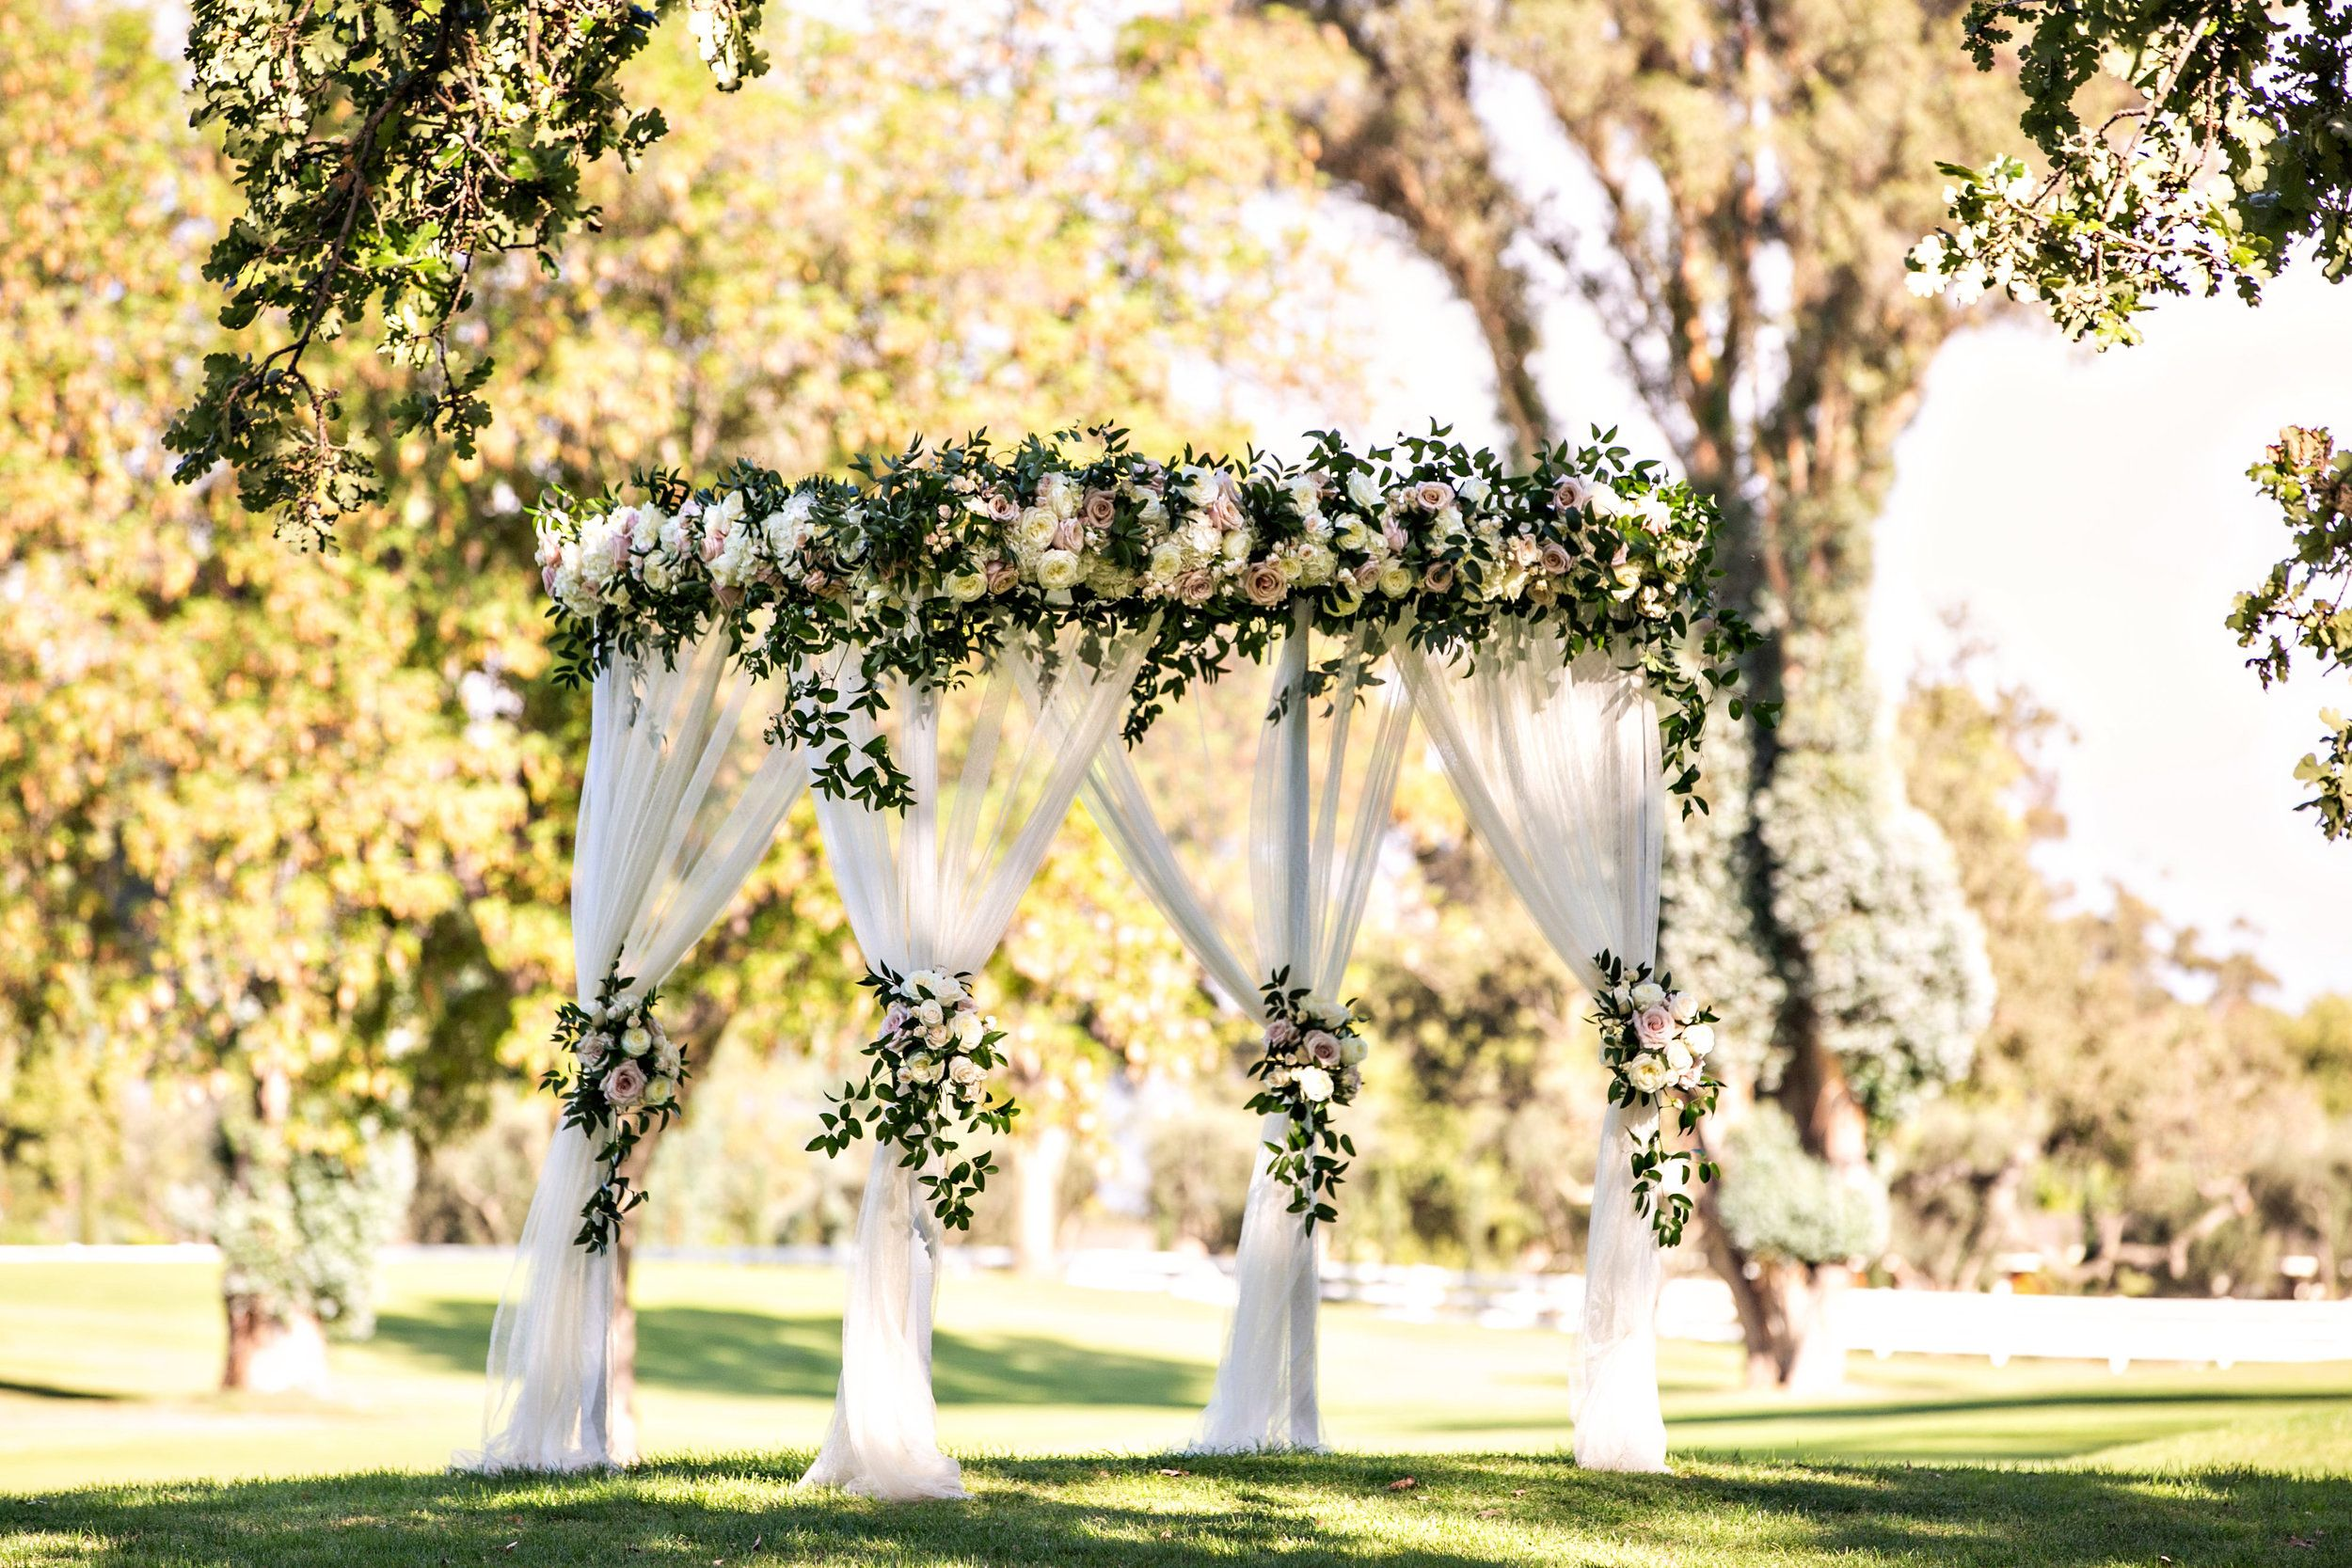 Www Santabarbarawedding Com Laurie Bailey Ojai Valley Inn Amber Weir Weddings Santa Barbara Wedding Santa Barbara Wedding Venue Classic Elegant Wedding